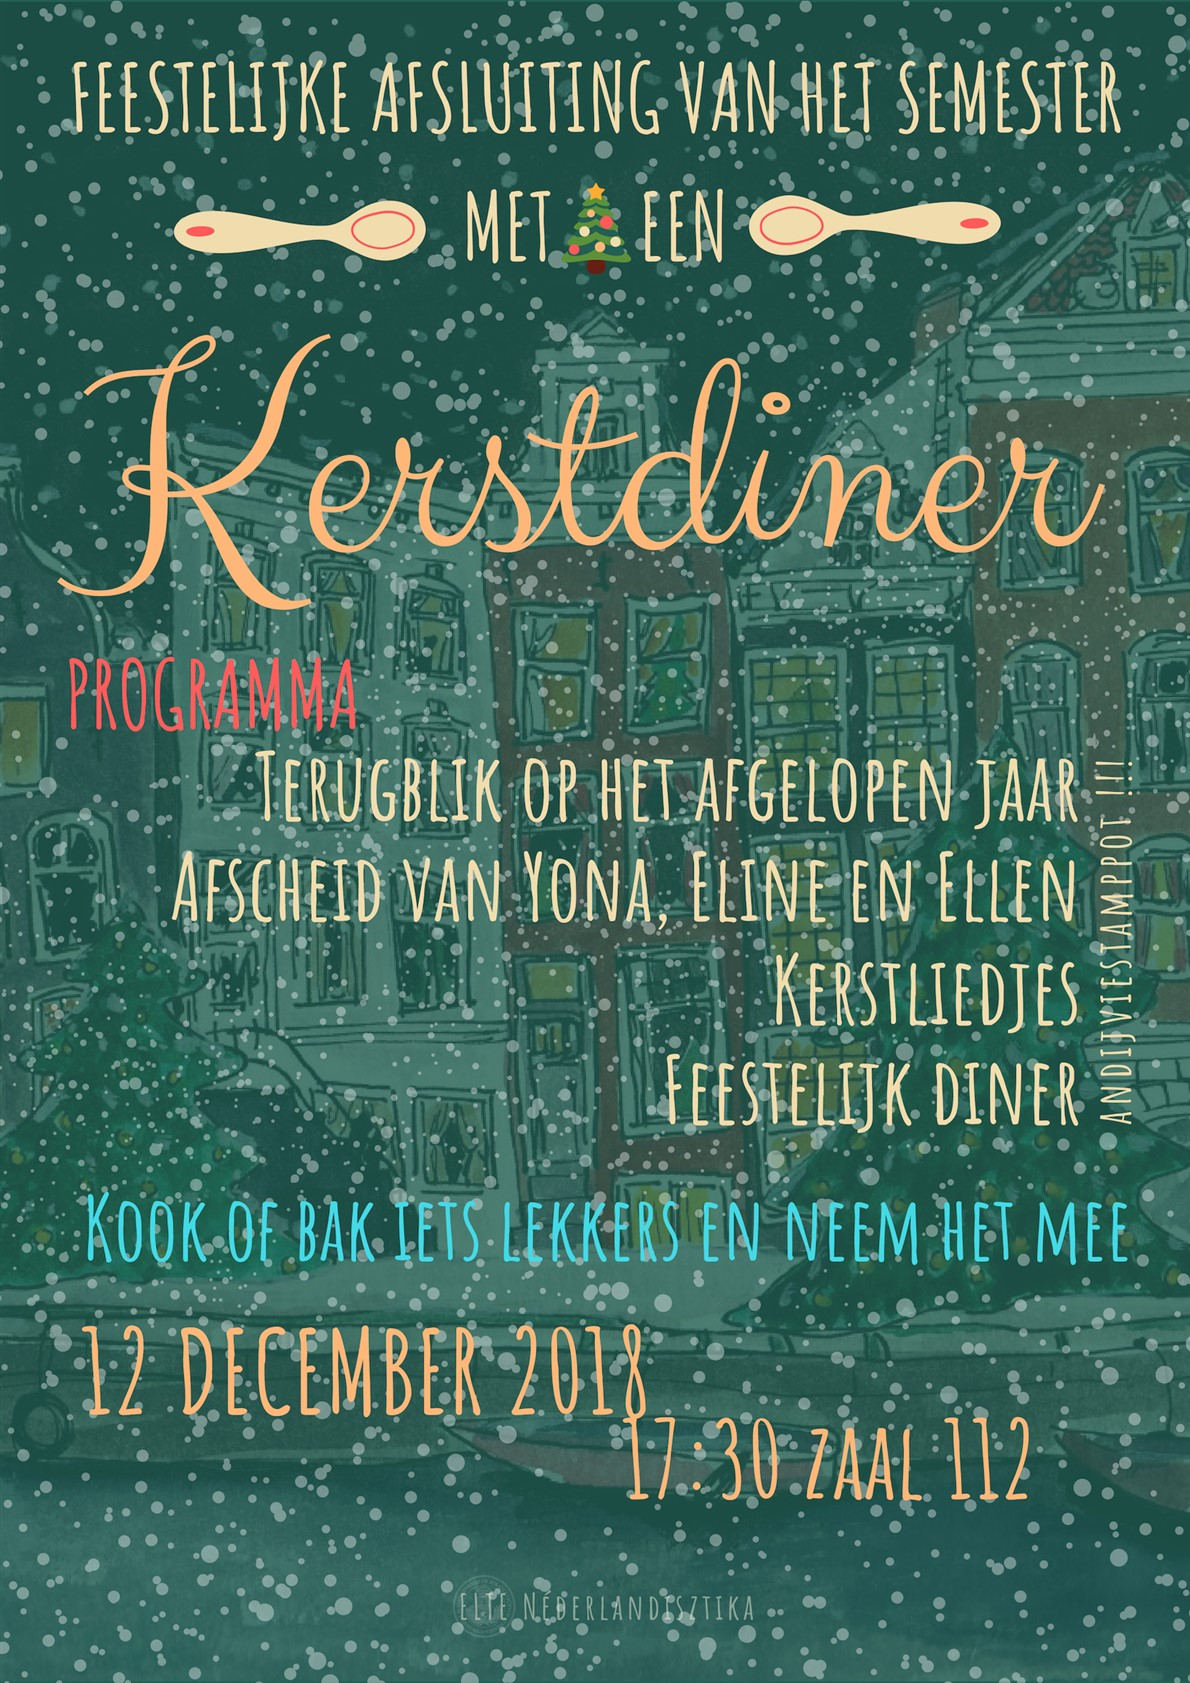 Kerstdener 2018 december 12 (1190 x 1683)